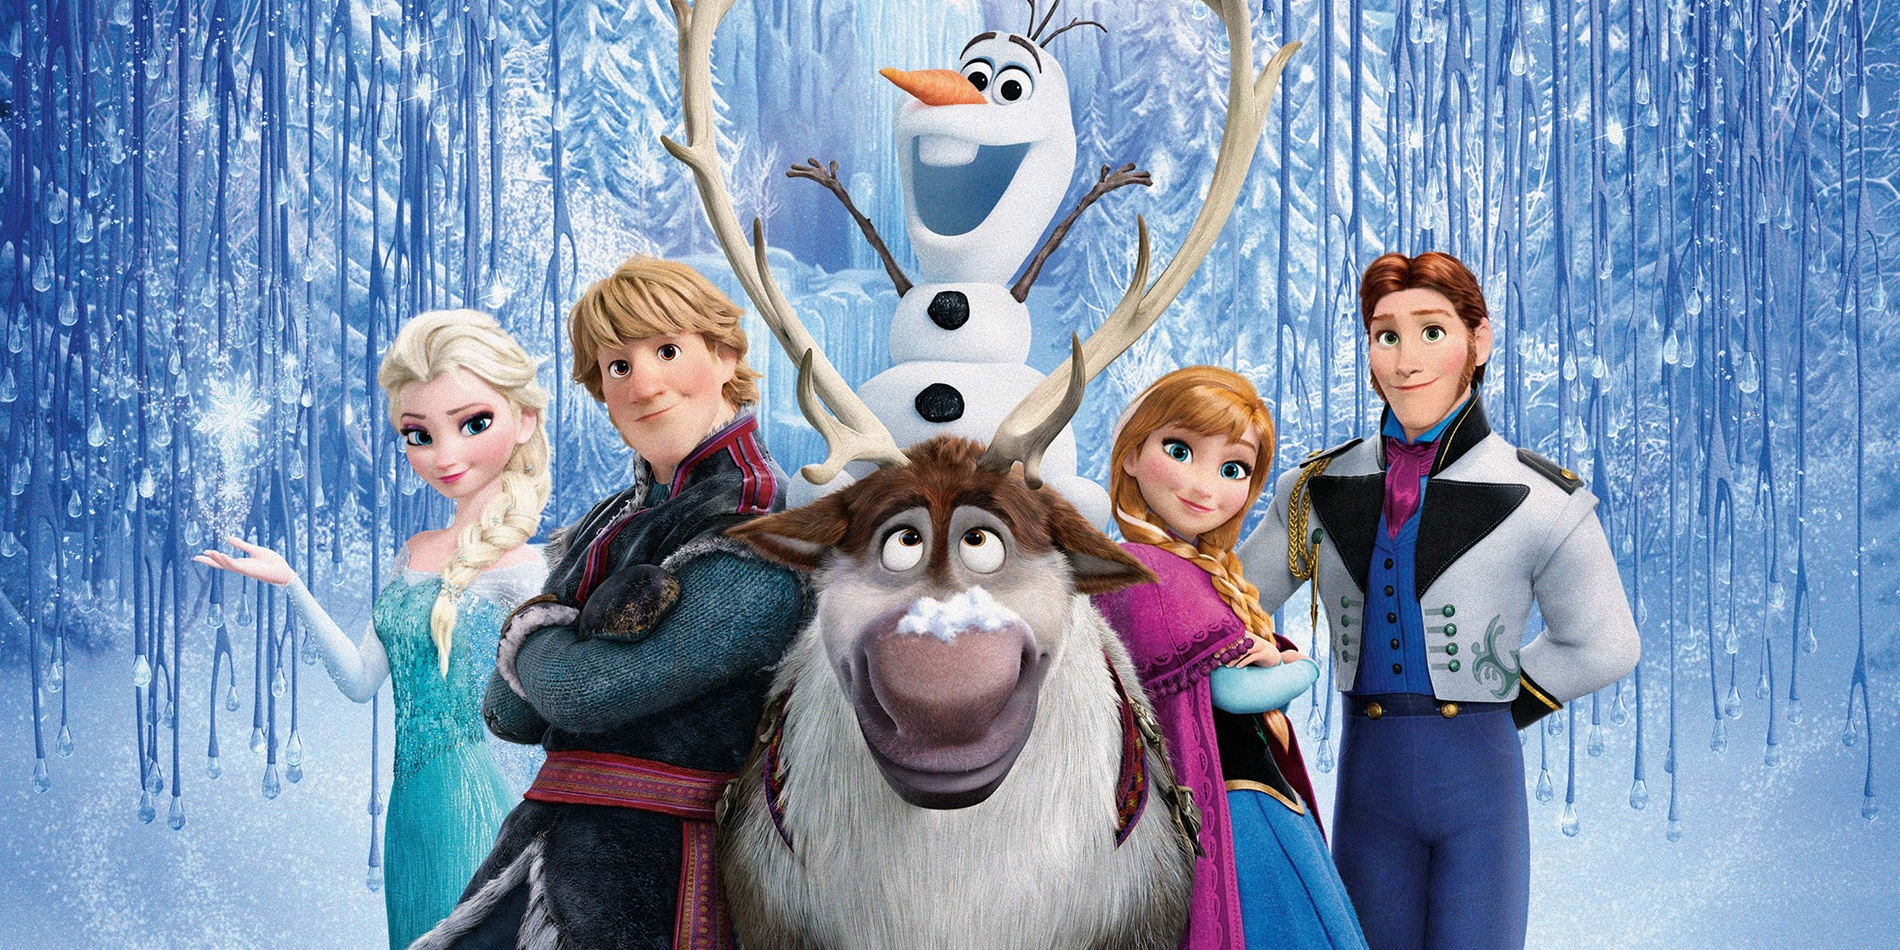 Disney's Frozen is getting the live orchestral treatment in Singapore